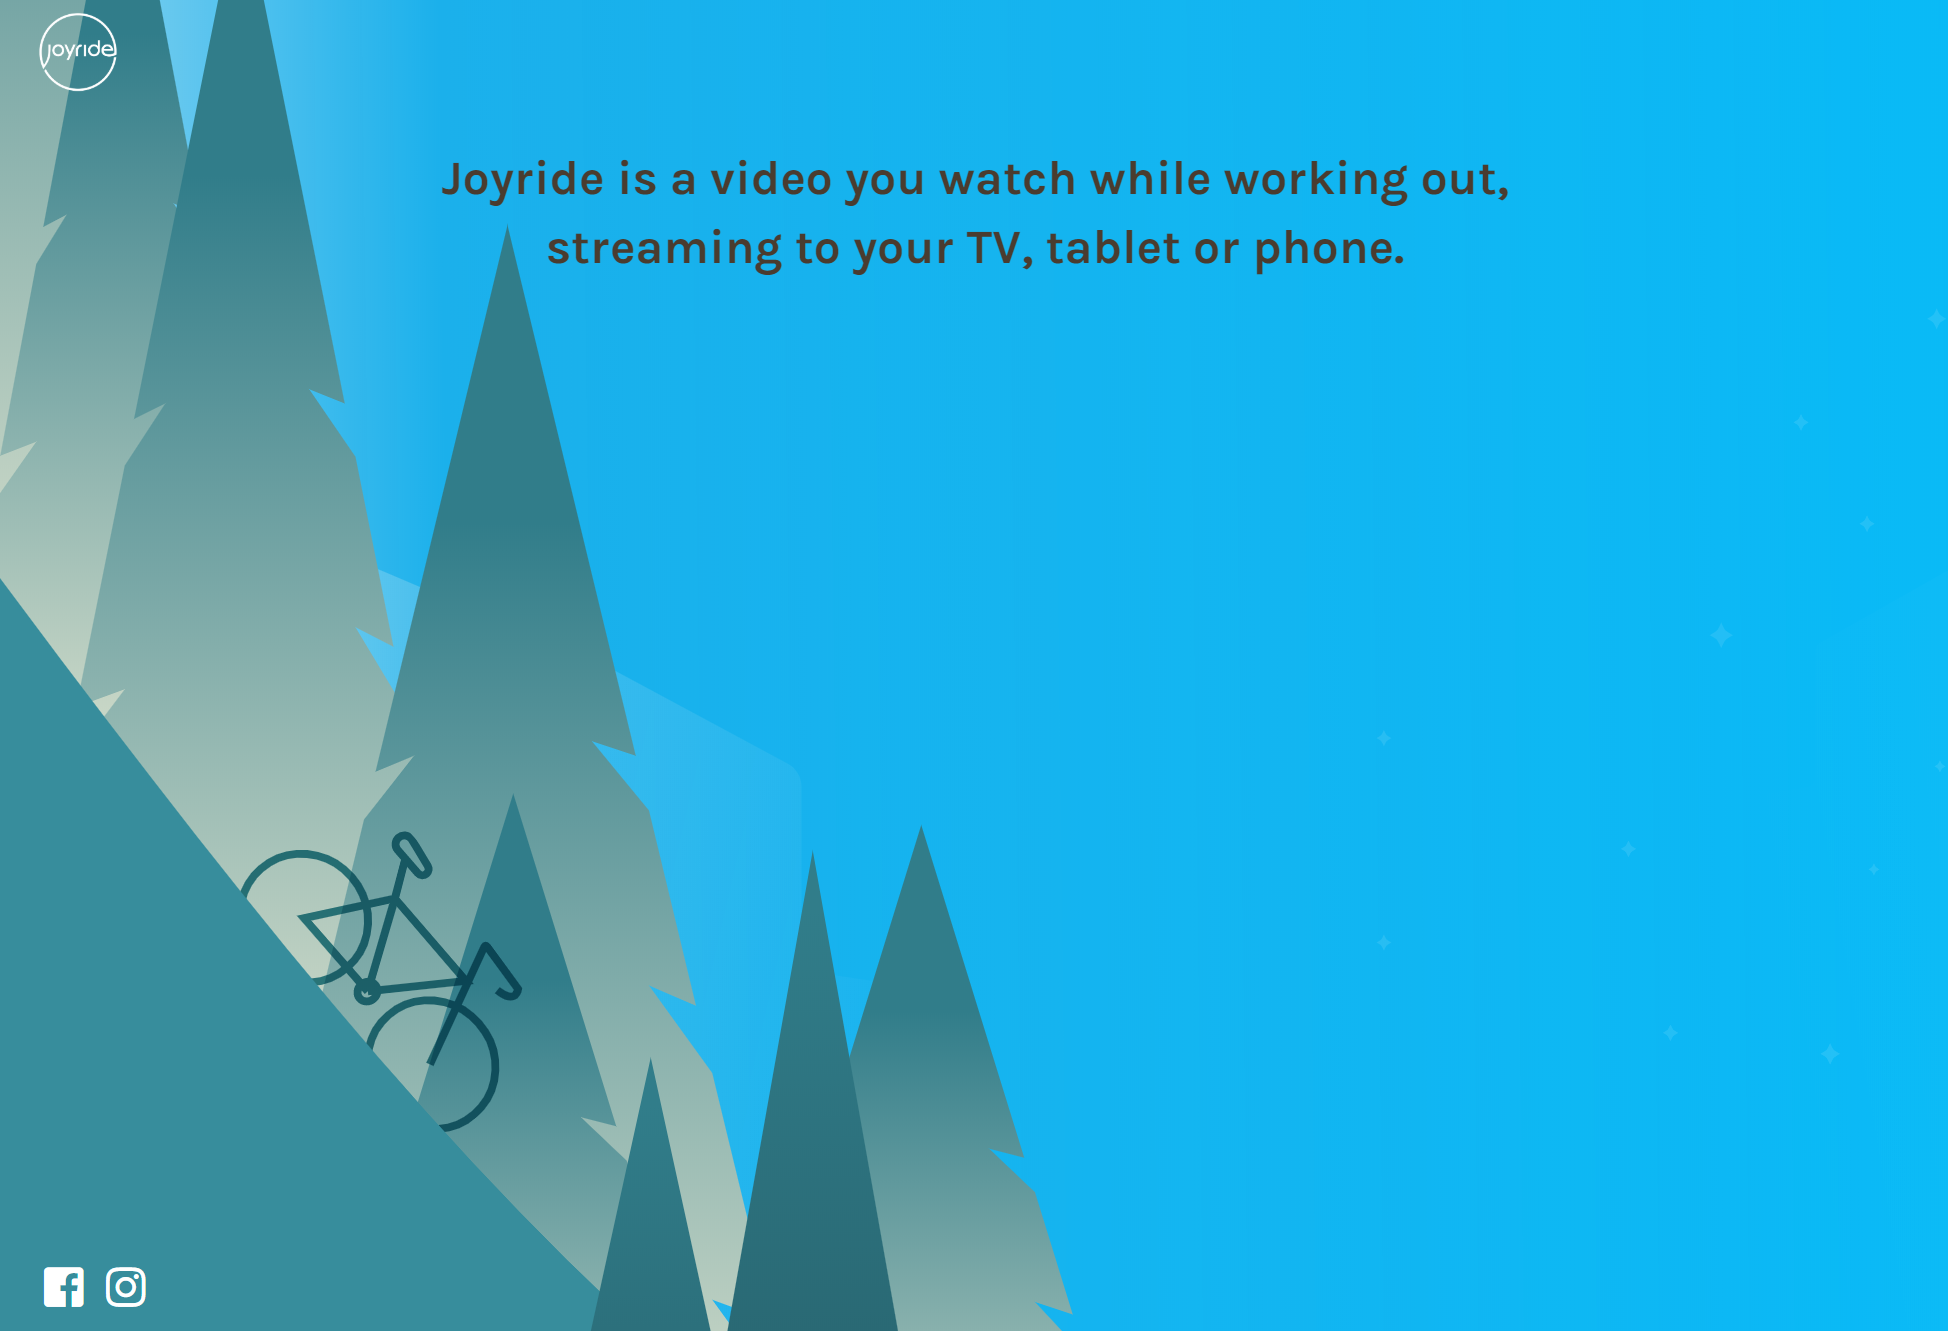 A screenshot of the middle of the joyride website